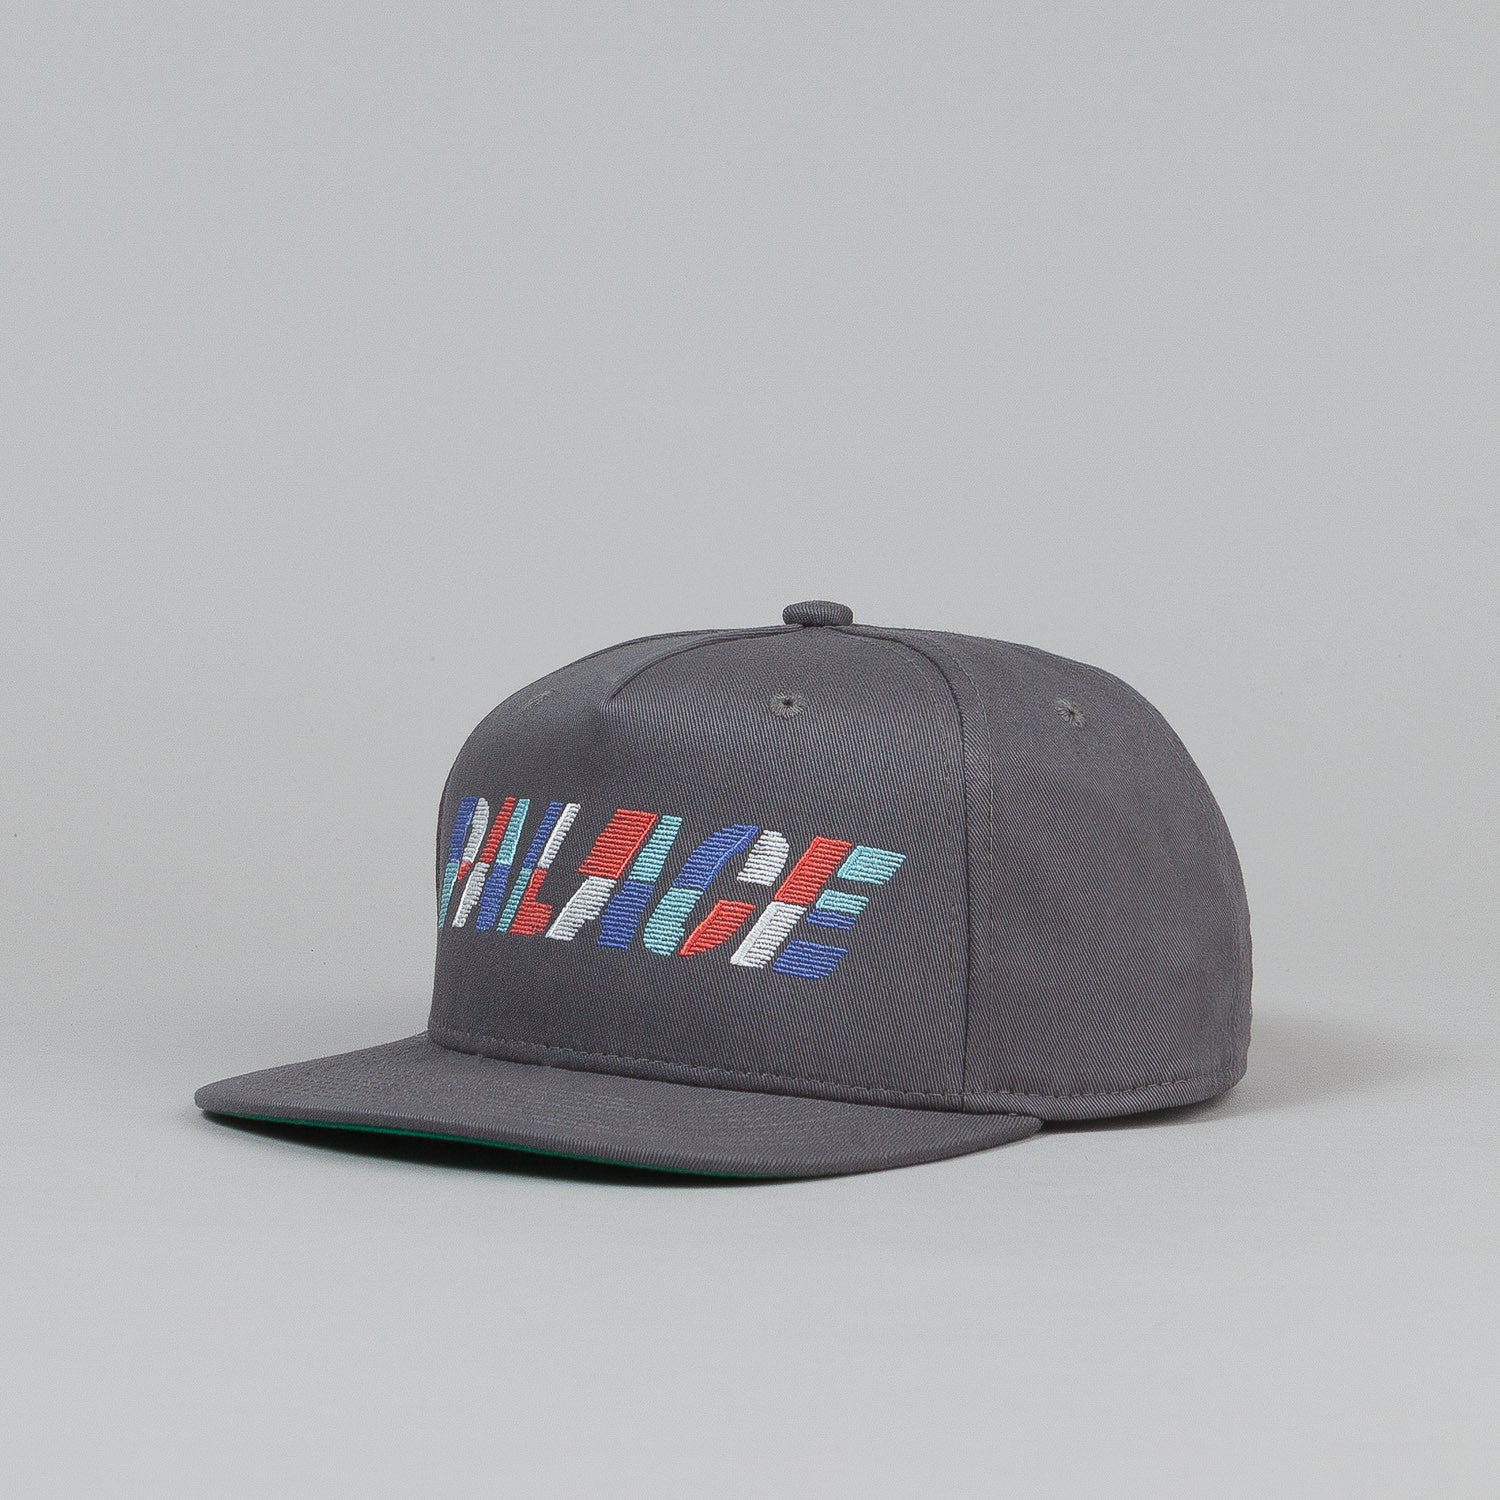 Palace One Tooth Snapback Cap